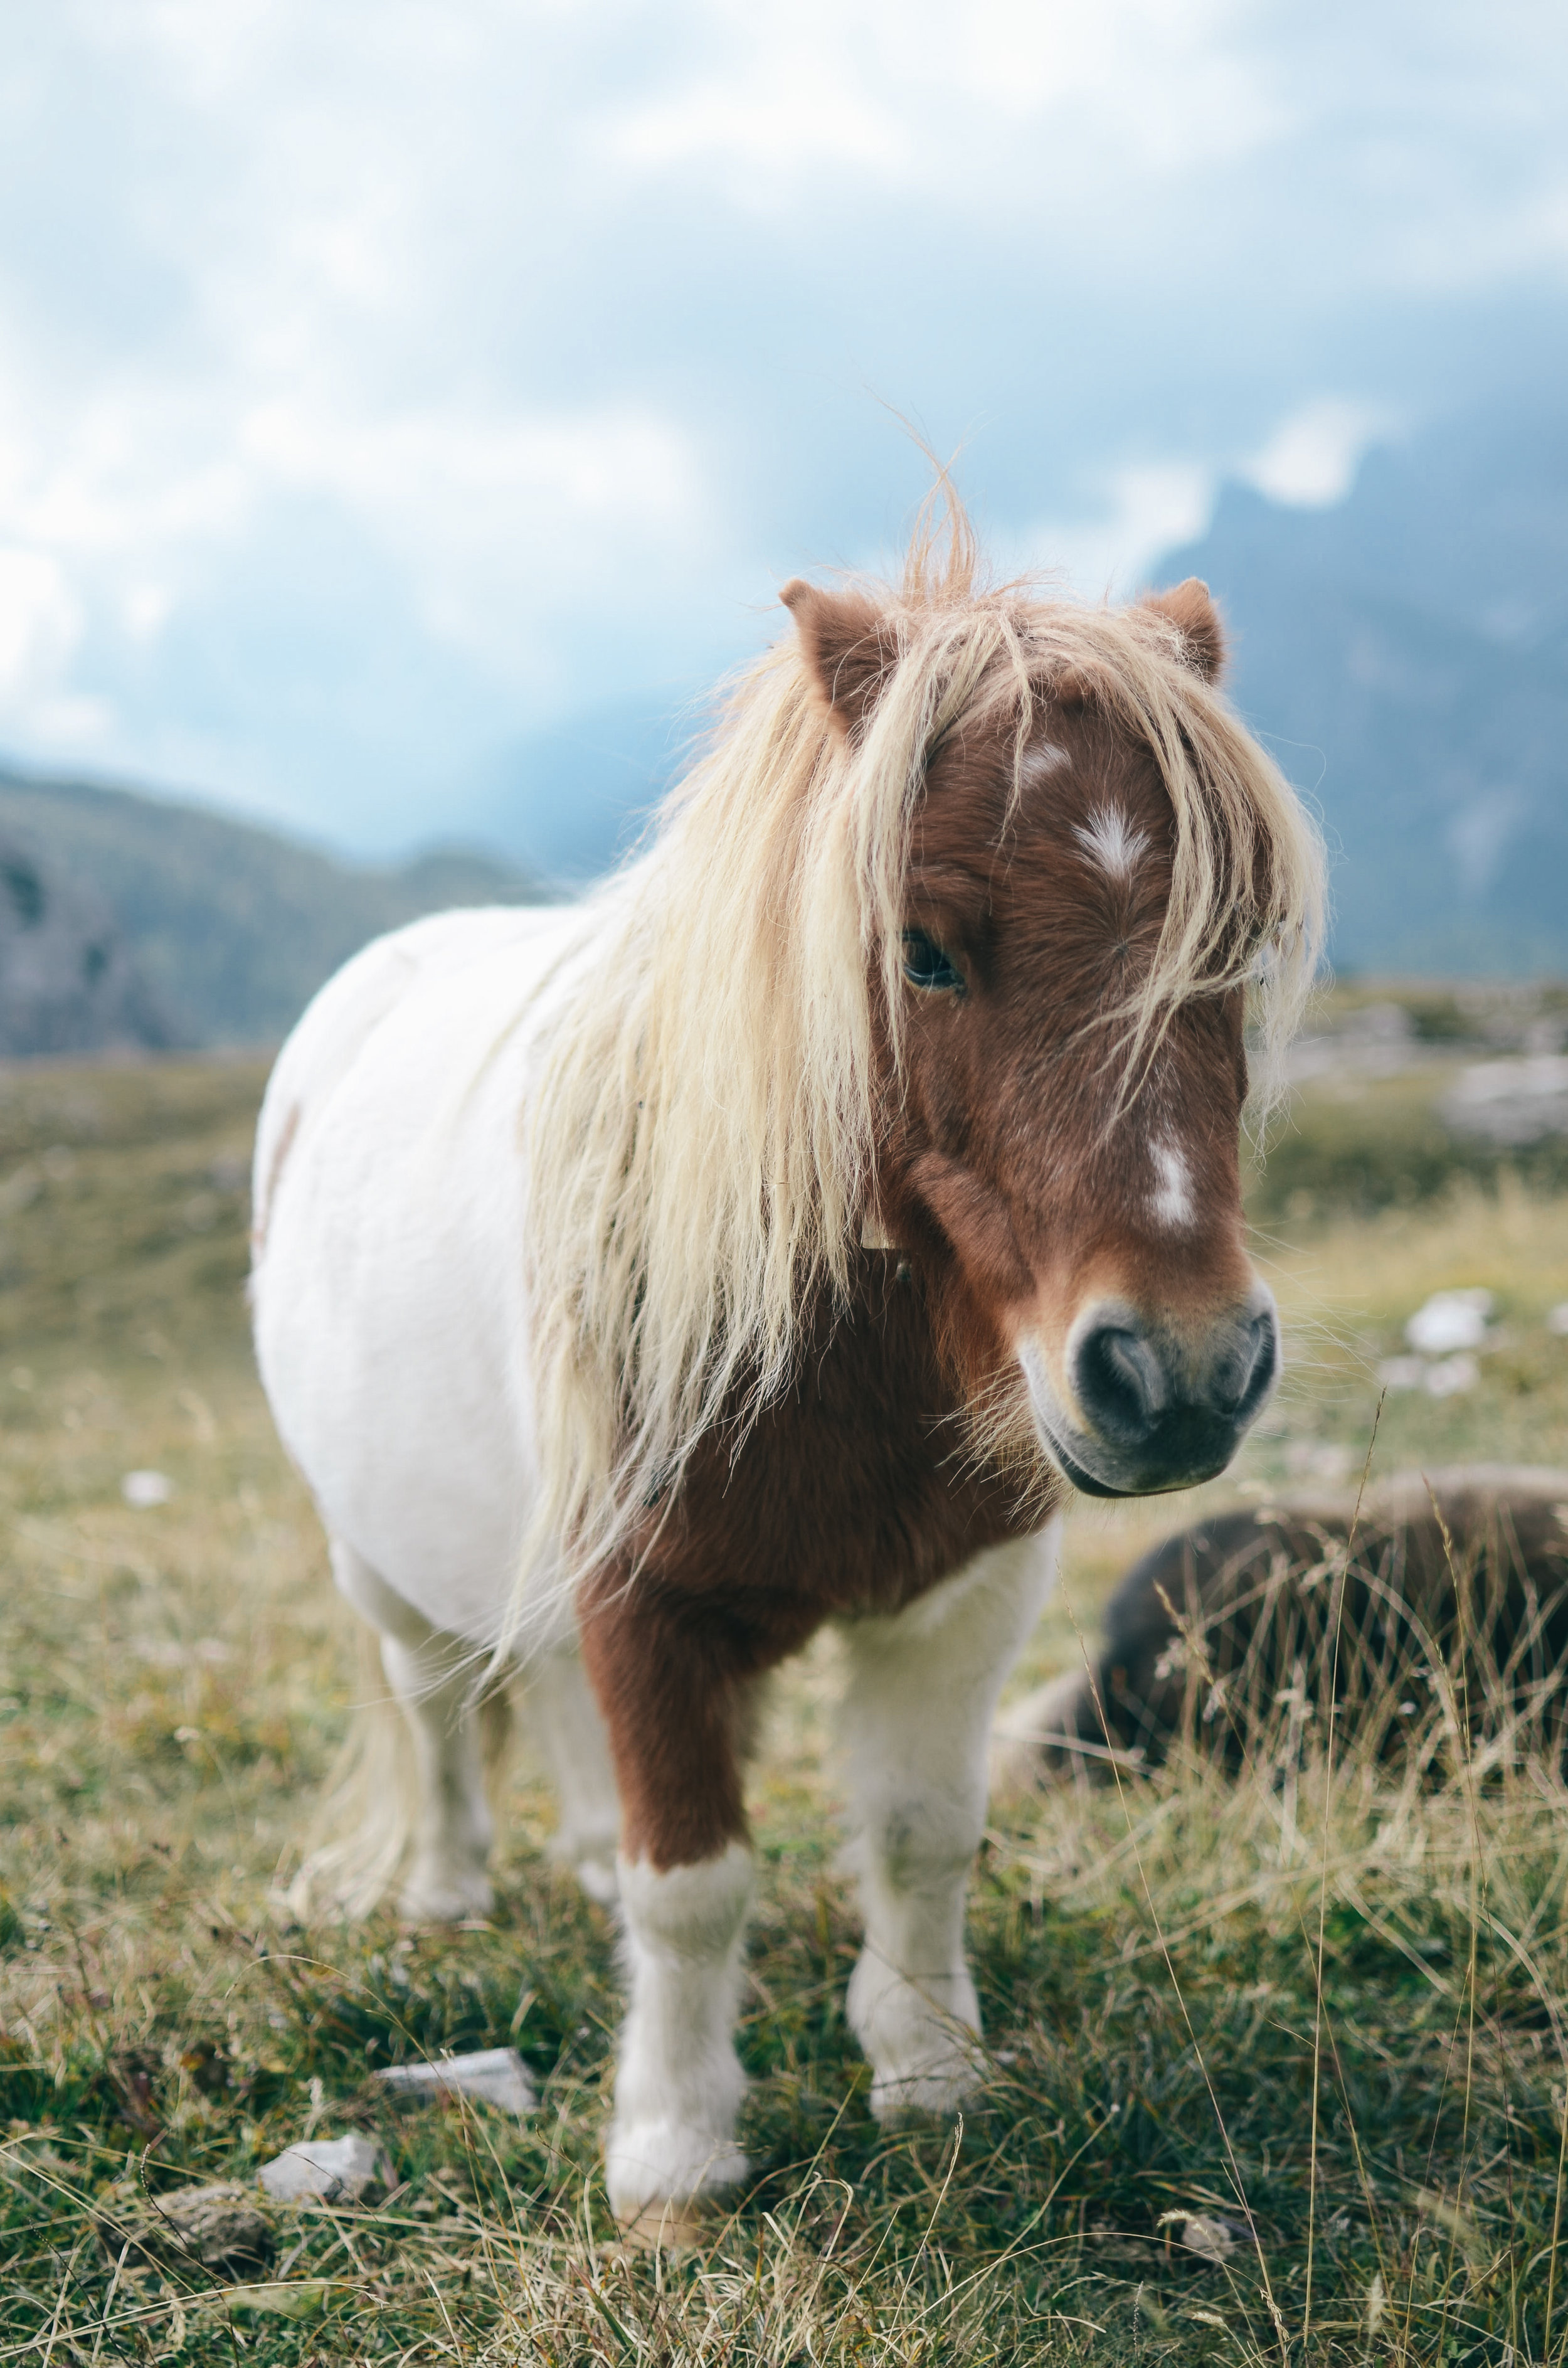 dolomites-why-the-italian-alps-should-be-your-next-mountain-adventure- travel-blog-tiny-horse.jpg